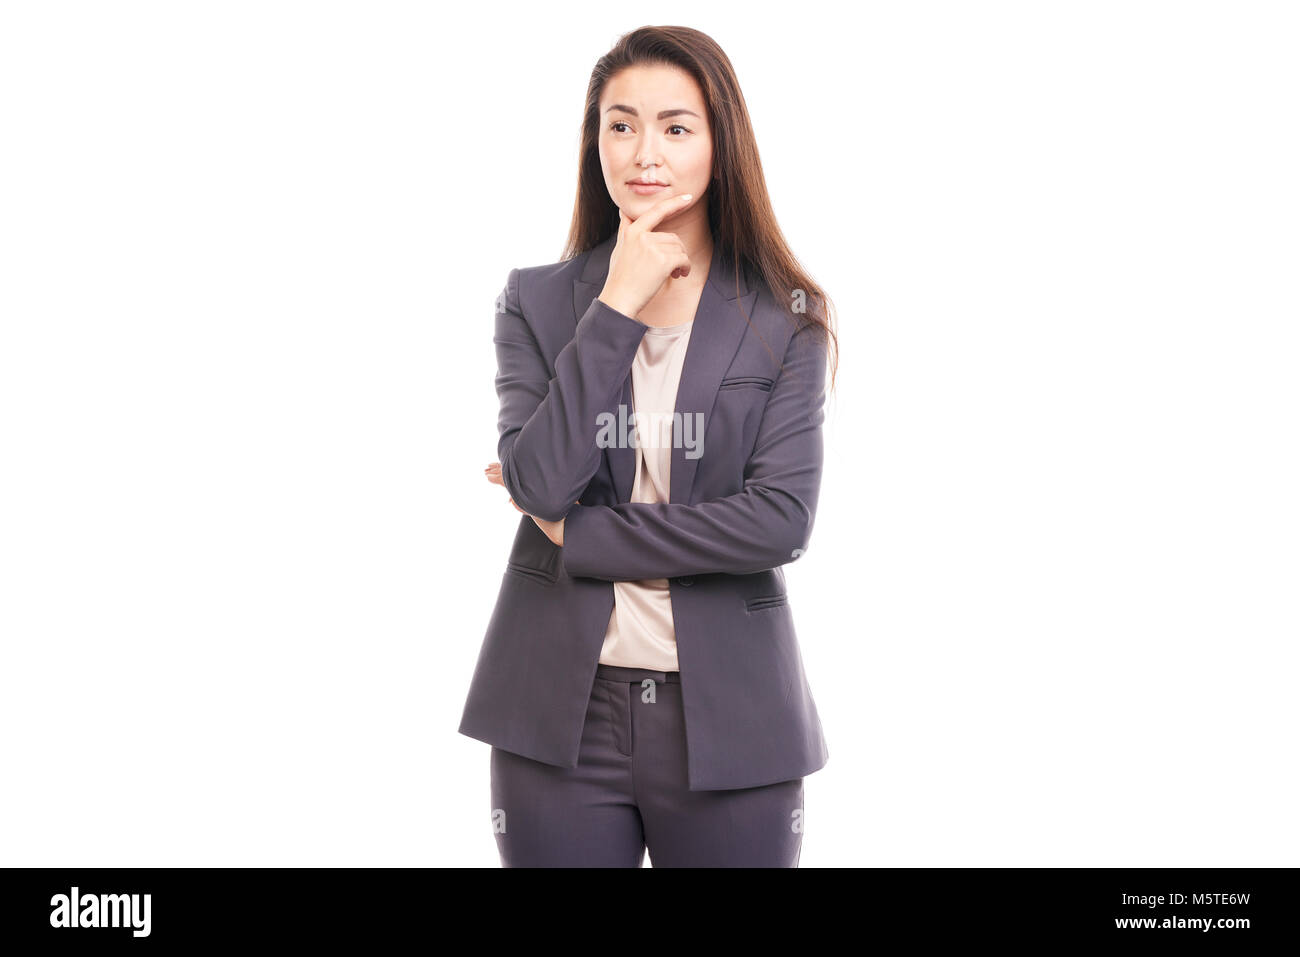 Emotional businesswoman - Stock Image